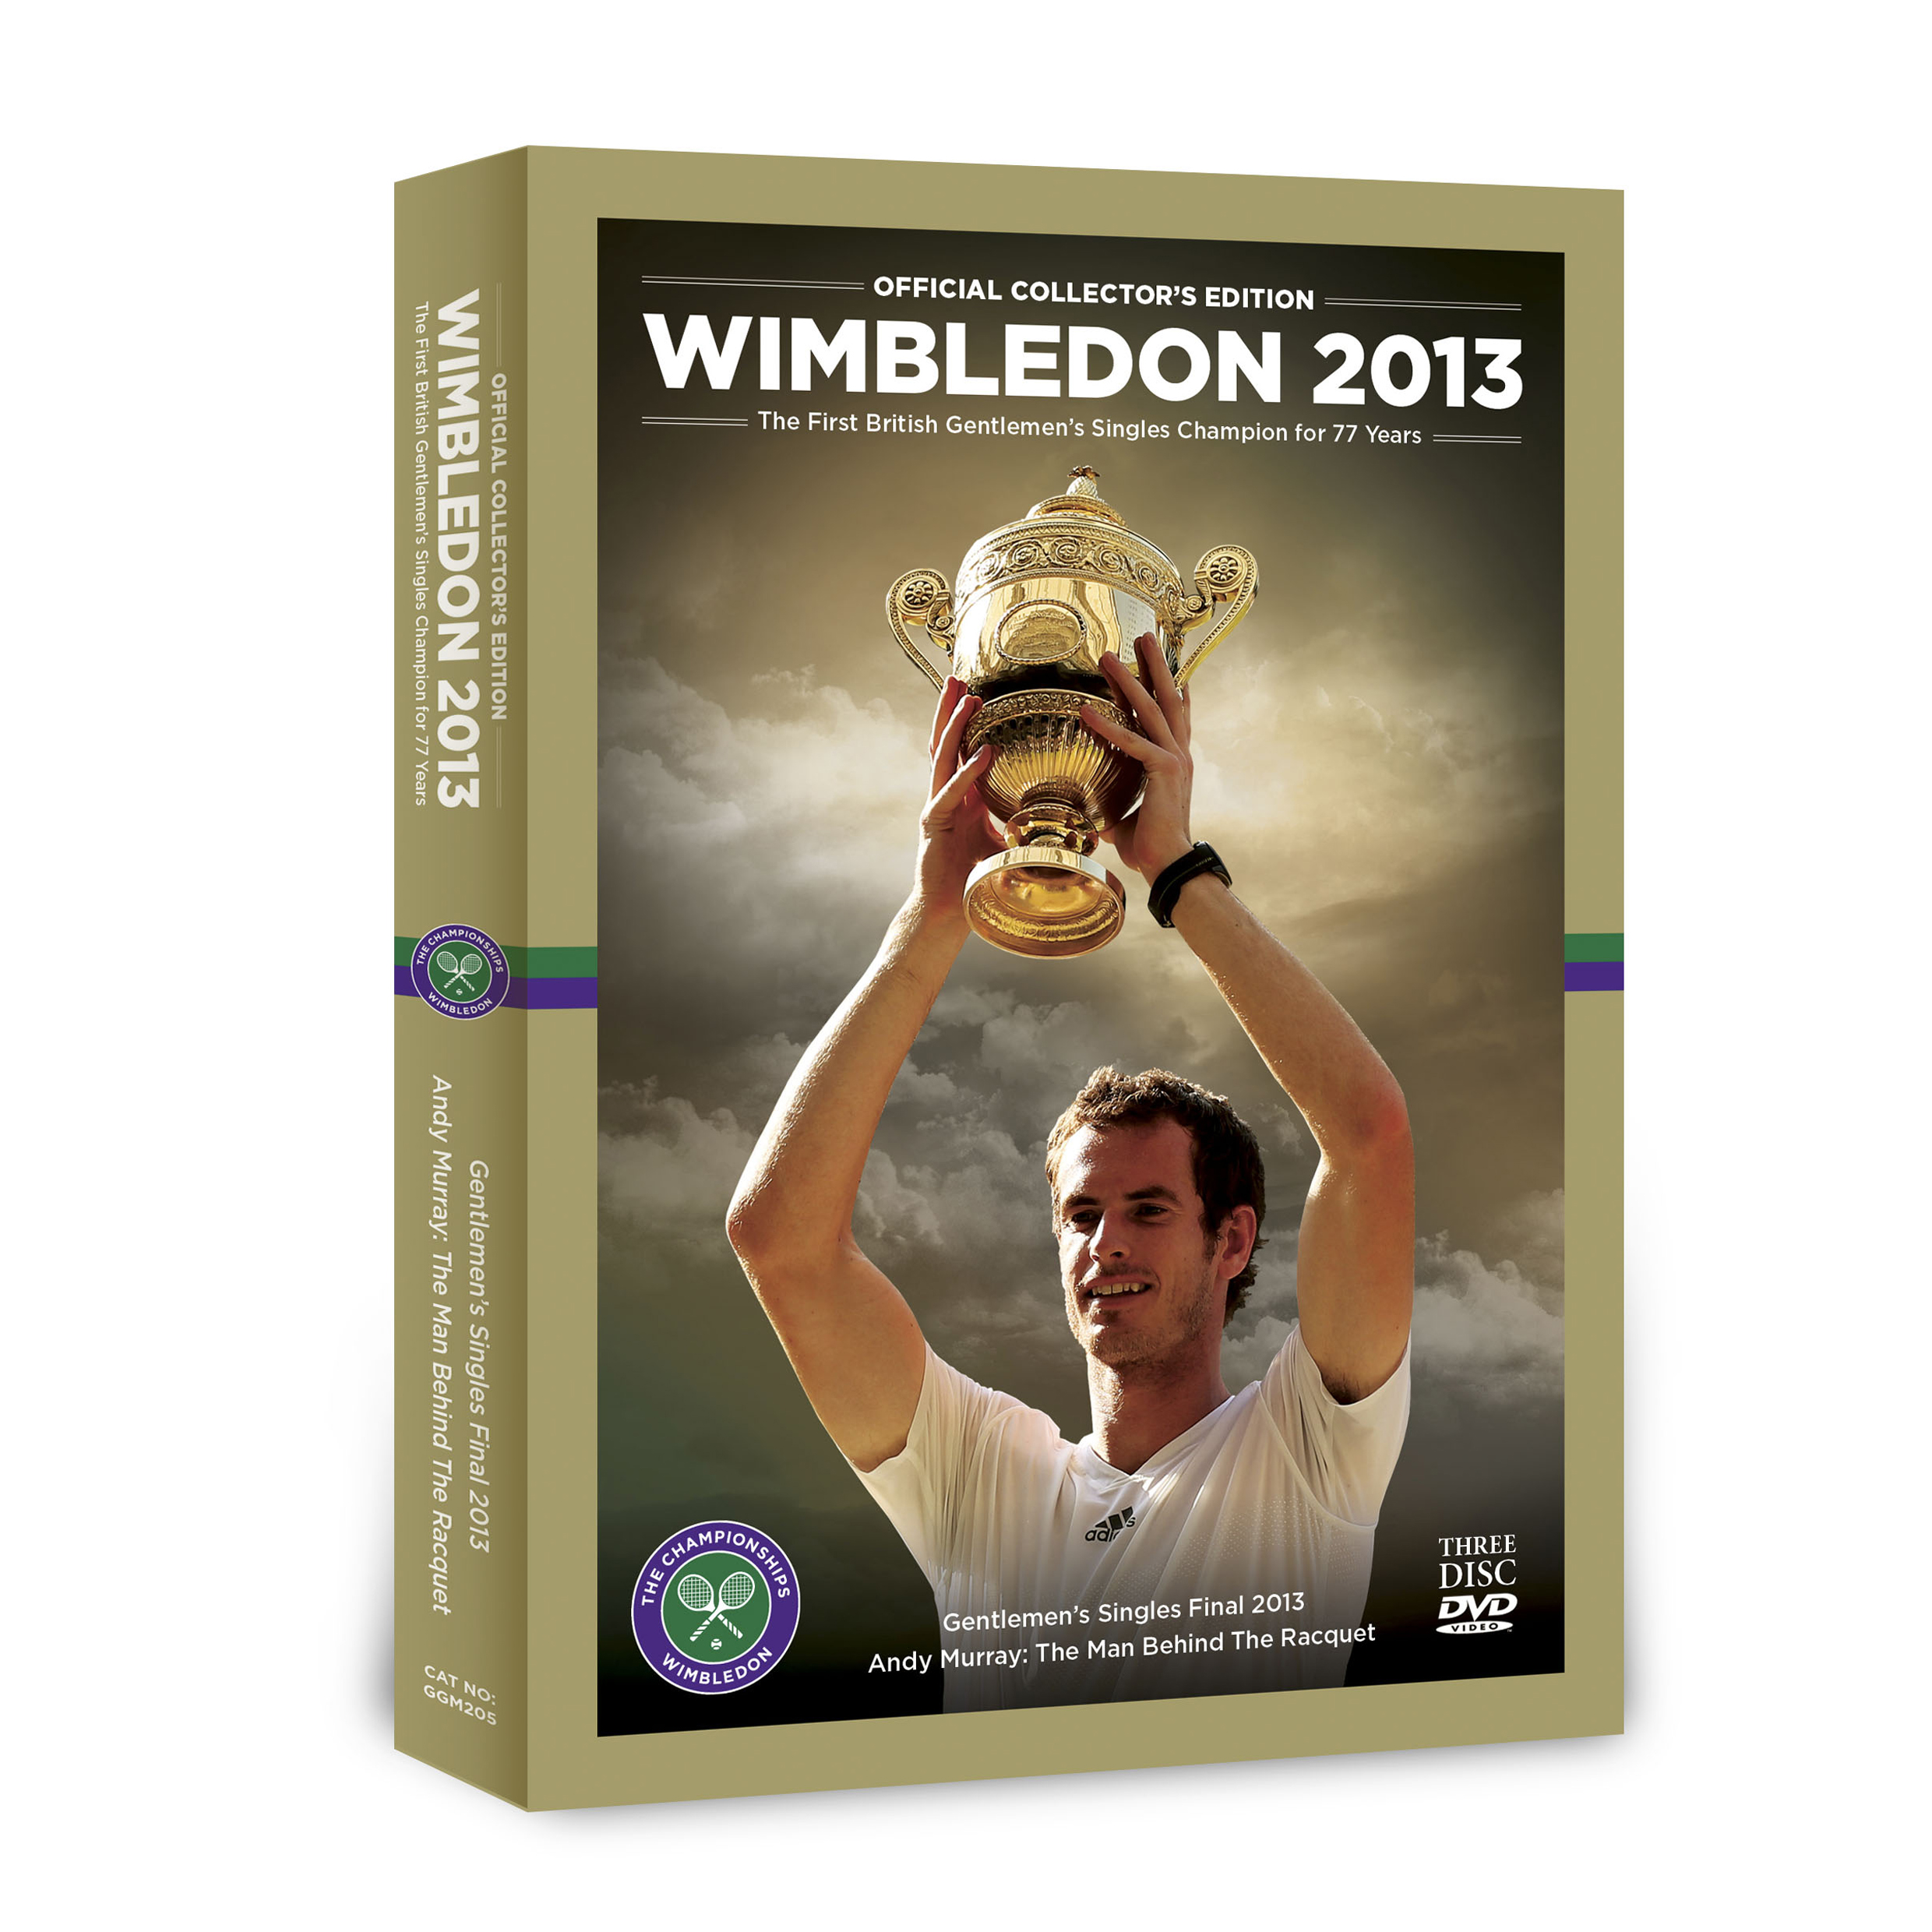 Wimbledon 2013 Official Collector`s Edition 3x DVD Boxset - Mens Final 2013 & Andy Murray: The Man Behind the Racket